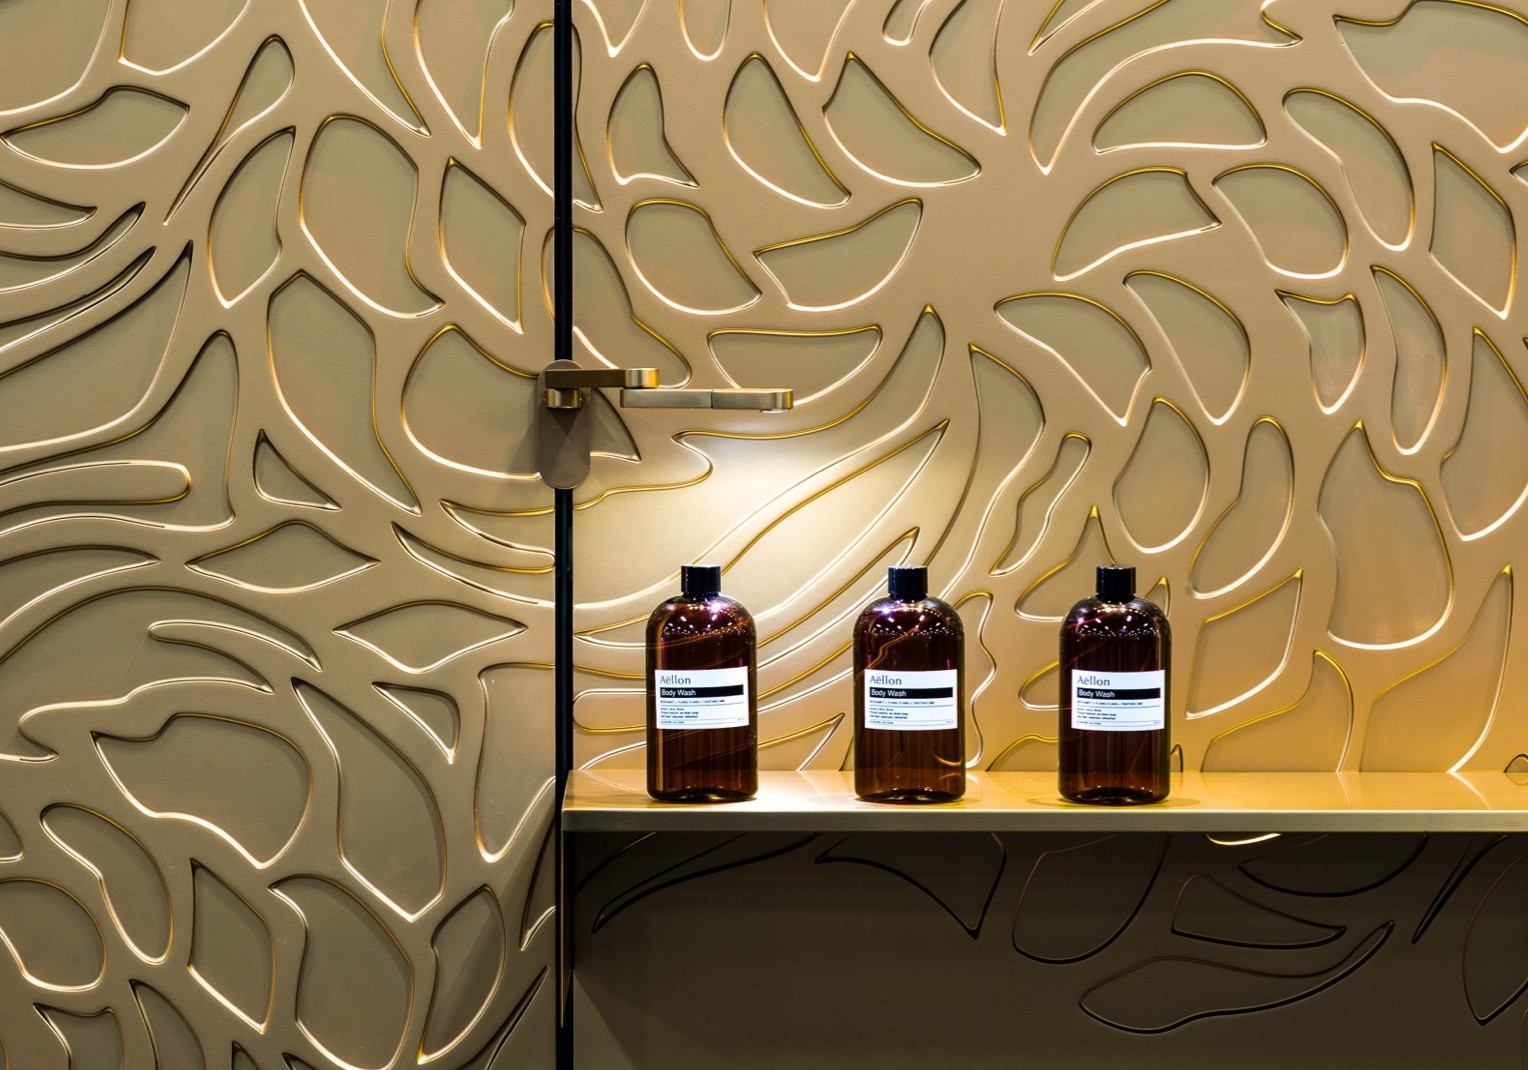 Close up shot of a golden floral patterned and metallic wall. A golden shelf along it is holding up three brown glass bottles.